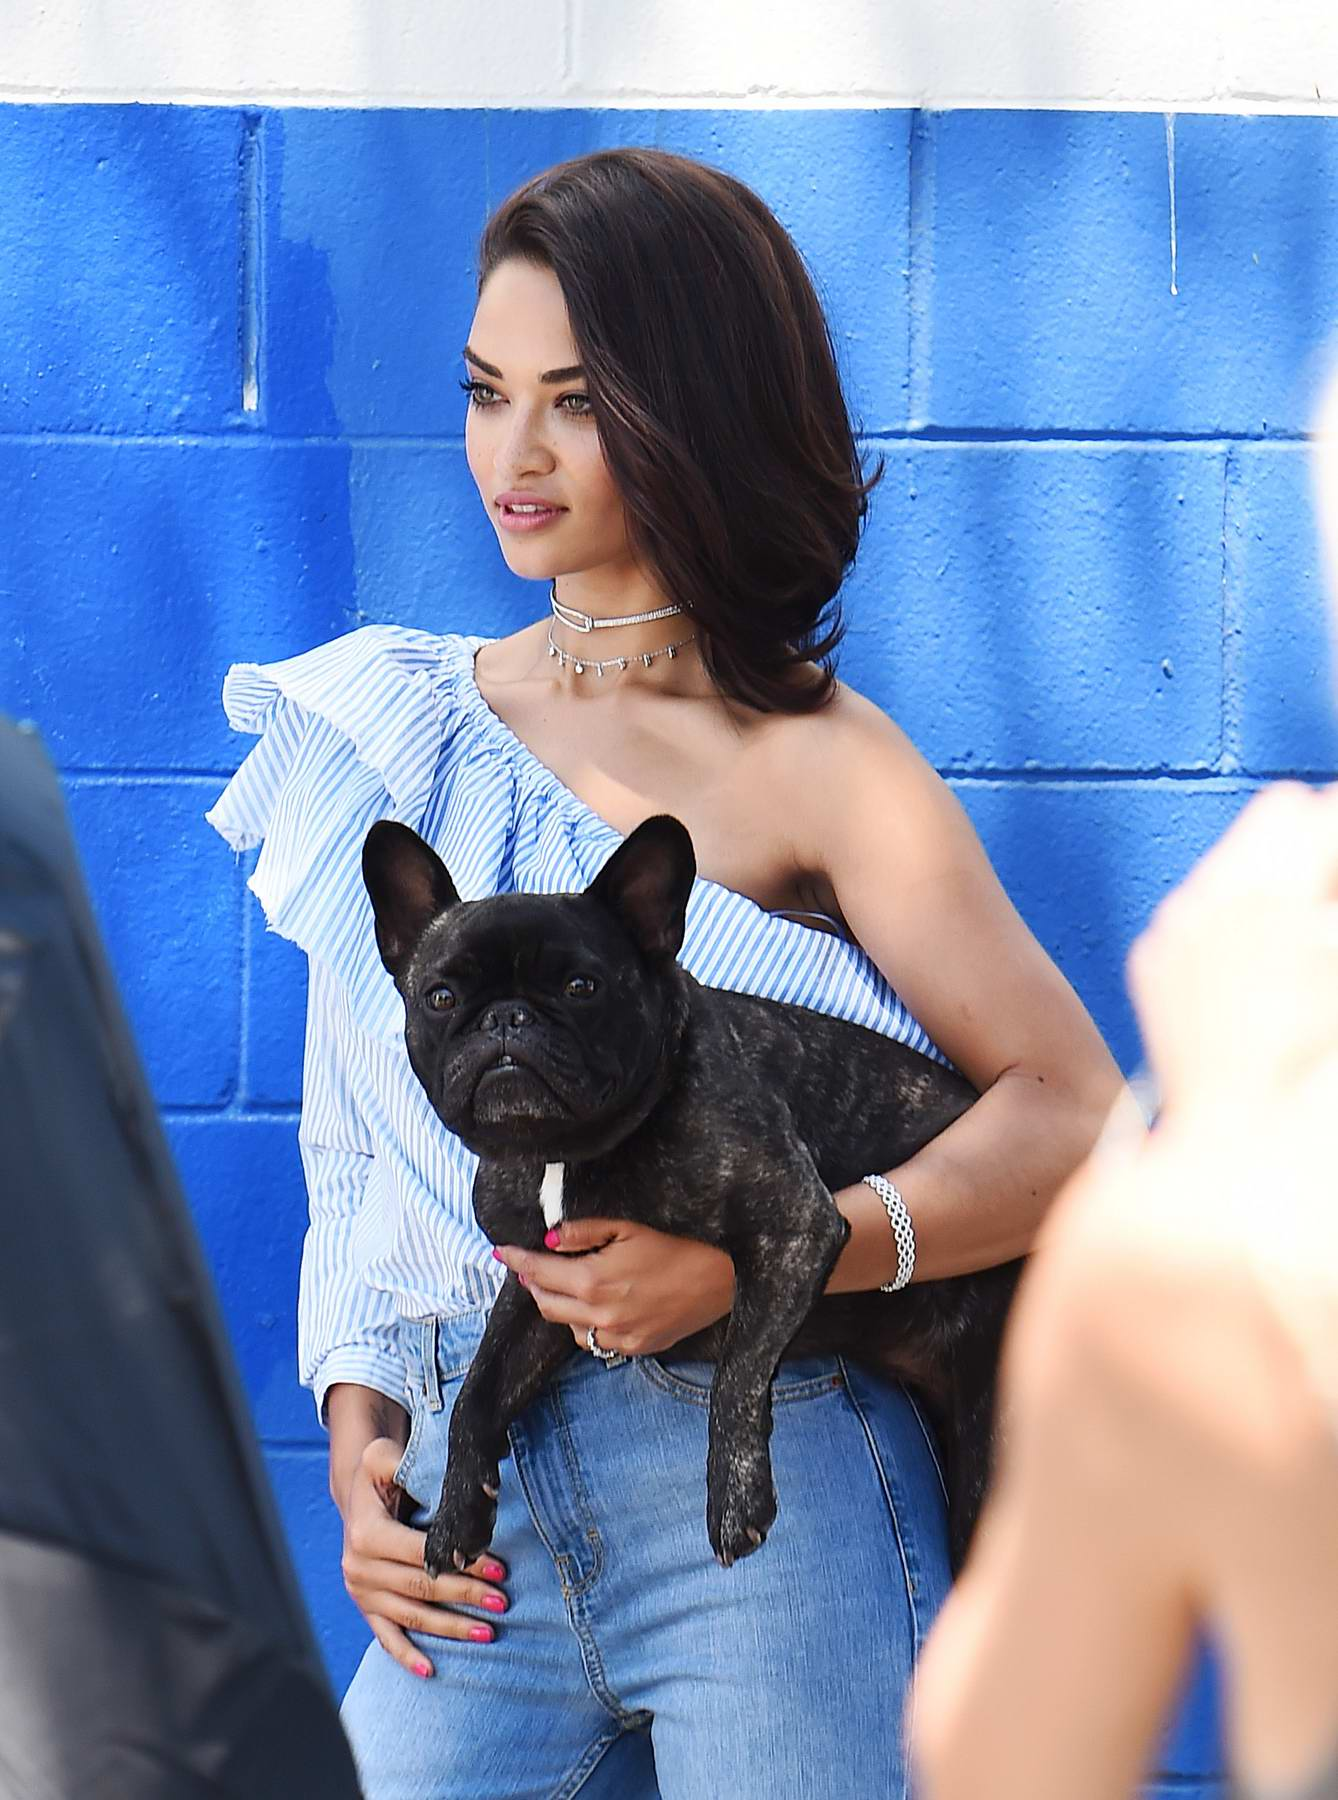 Shanina Shaik carries her Dog in hand at a Photoshoot in Los Angeles